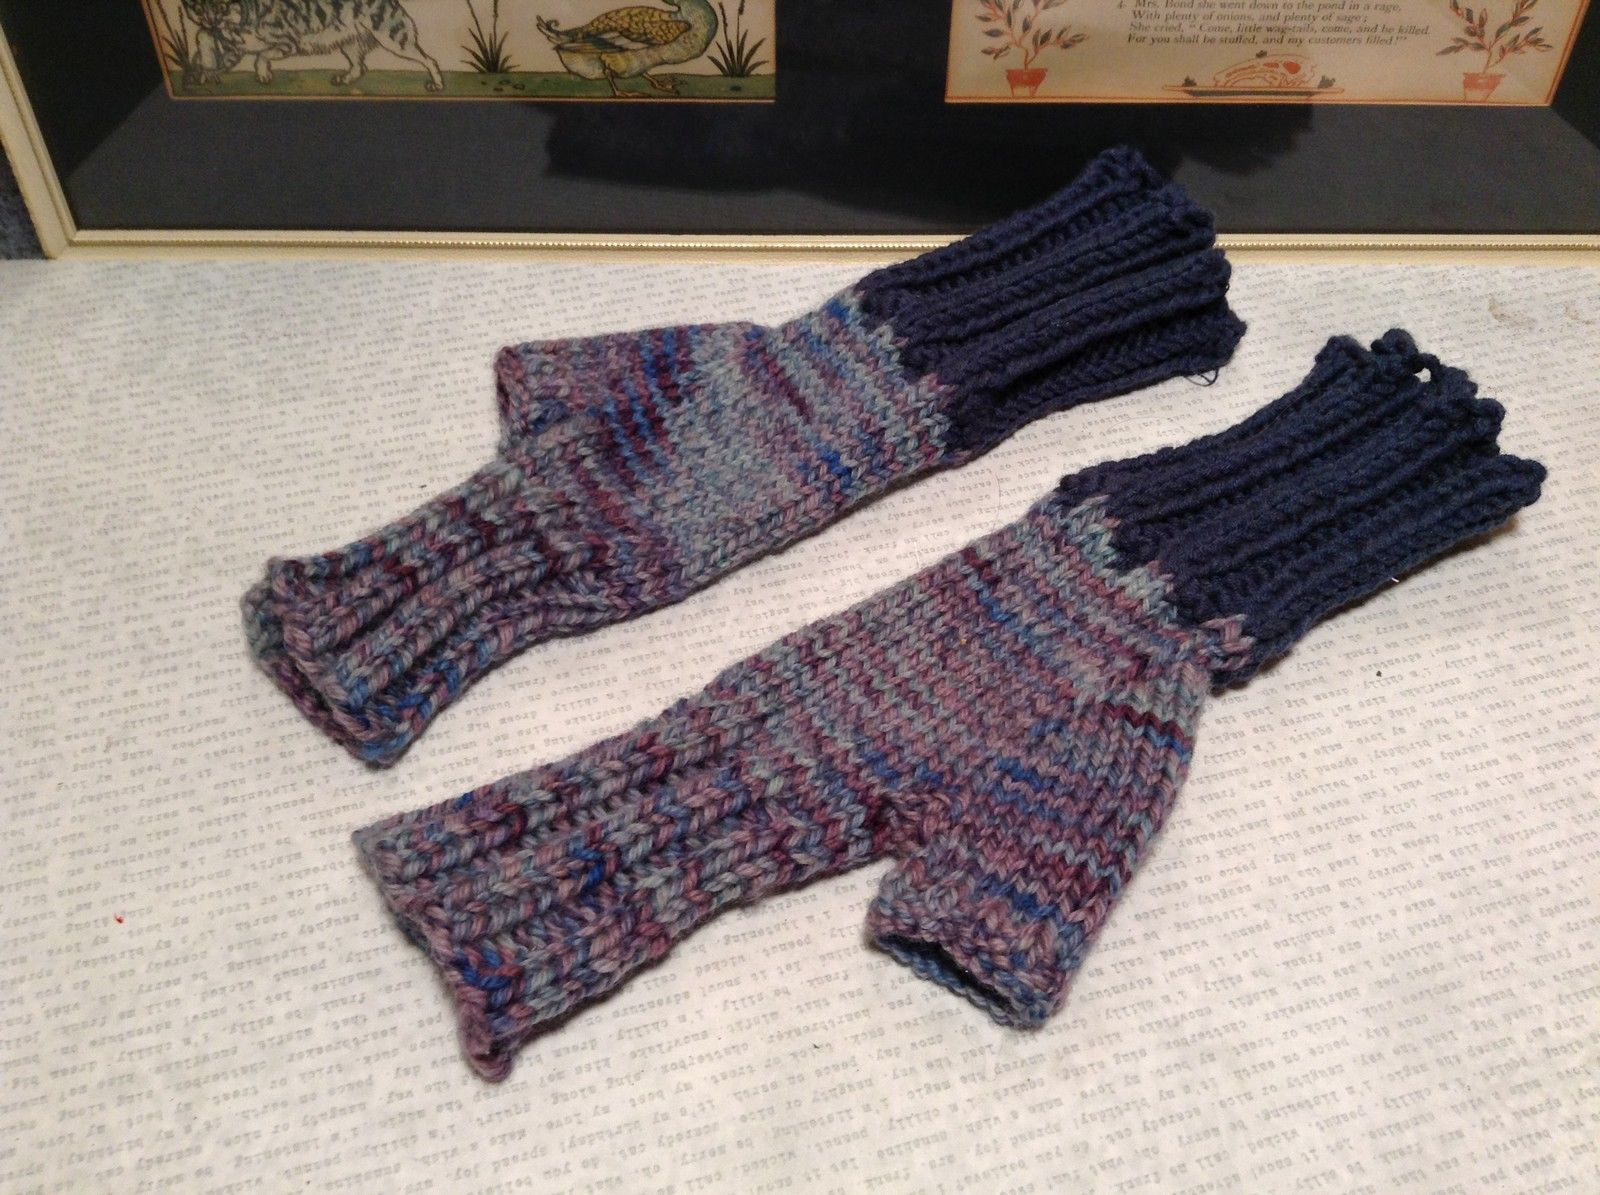 Woven Lavender Fingerless Gloves for Small Hands Hand Knitted VERY Soft